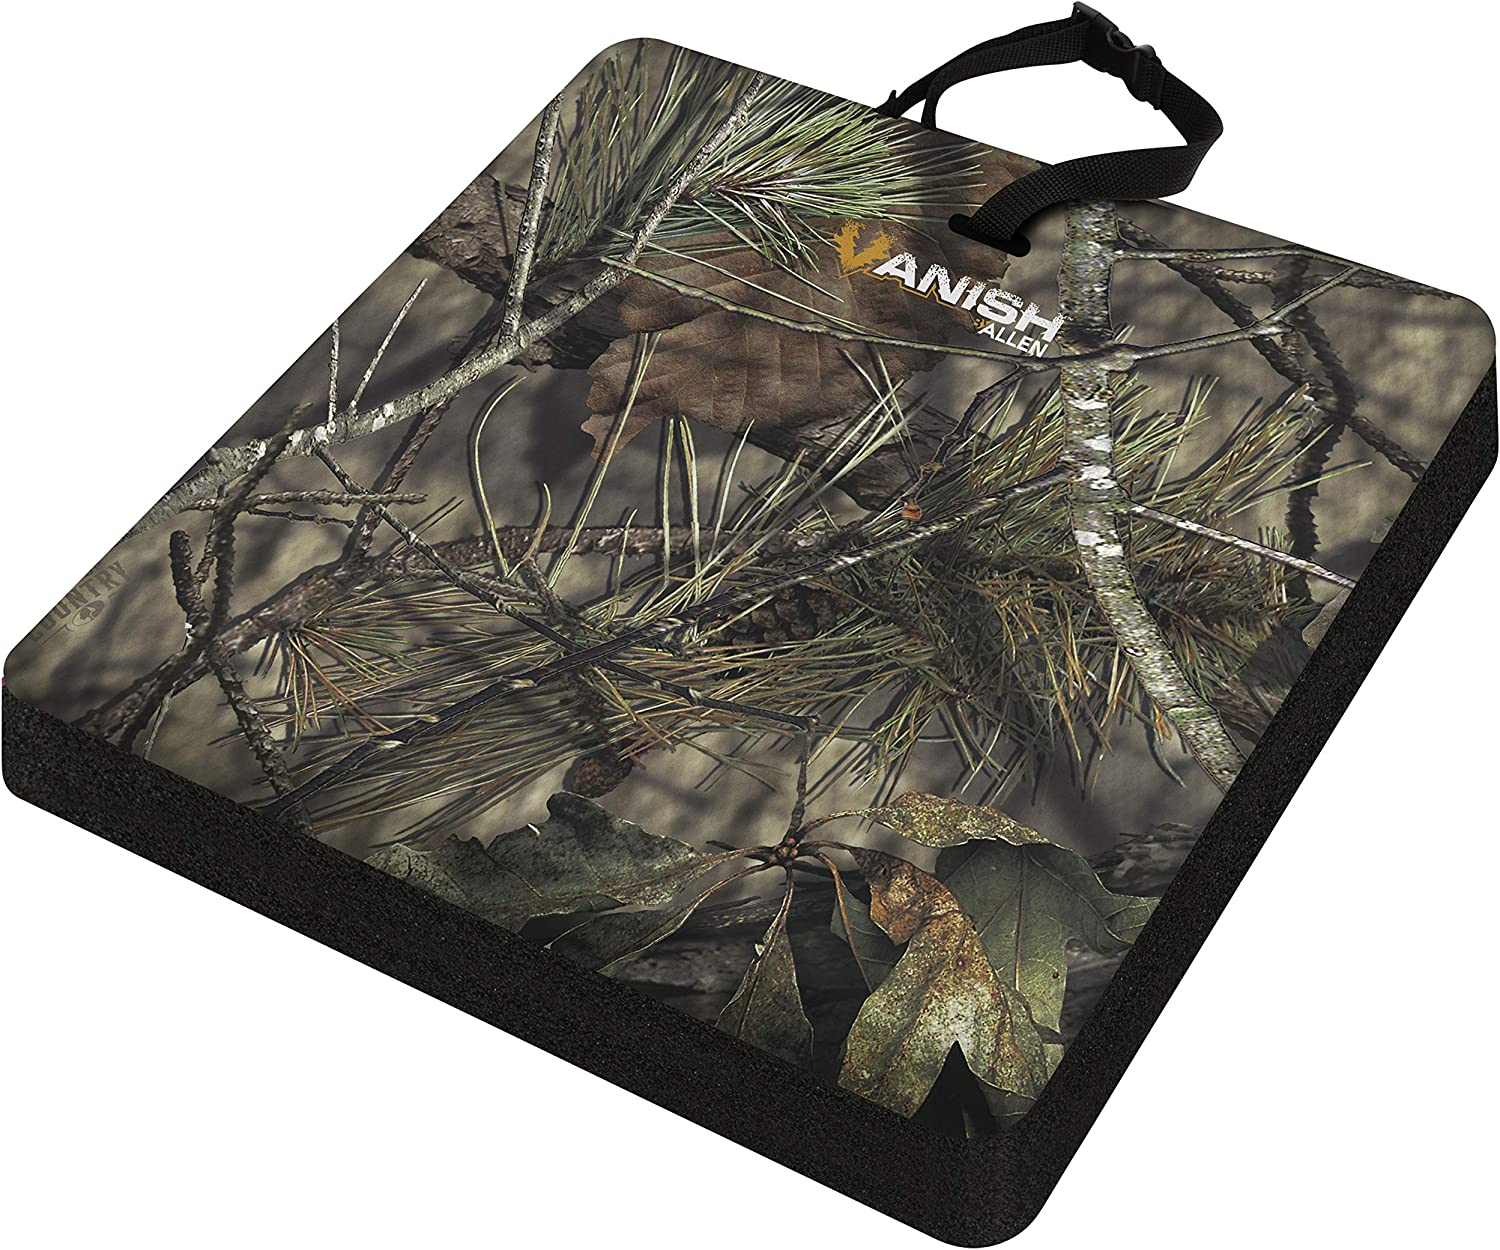 Allen Company Foam Cushion XL (Extra Large), 15 x 14 x 2 inches - Mossy Oak Country, Mossy Oak Break-Up Country, One Size (5834) : Sports & Outdoors